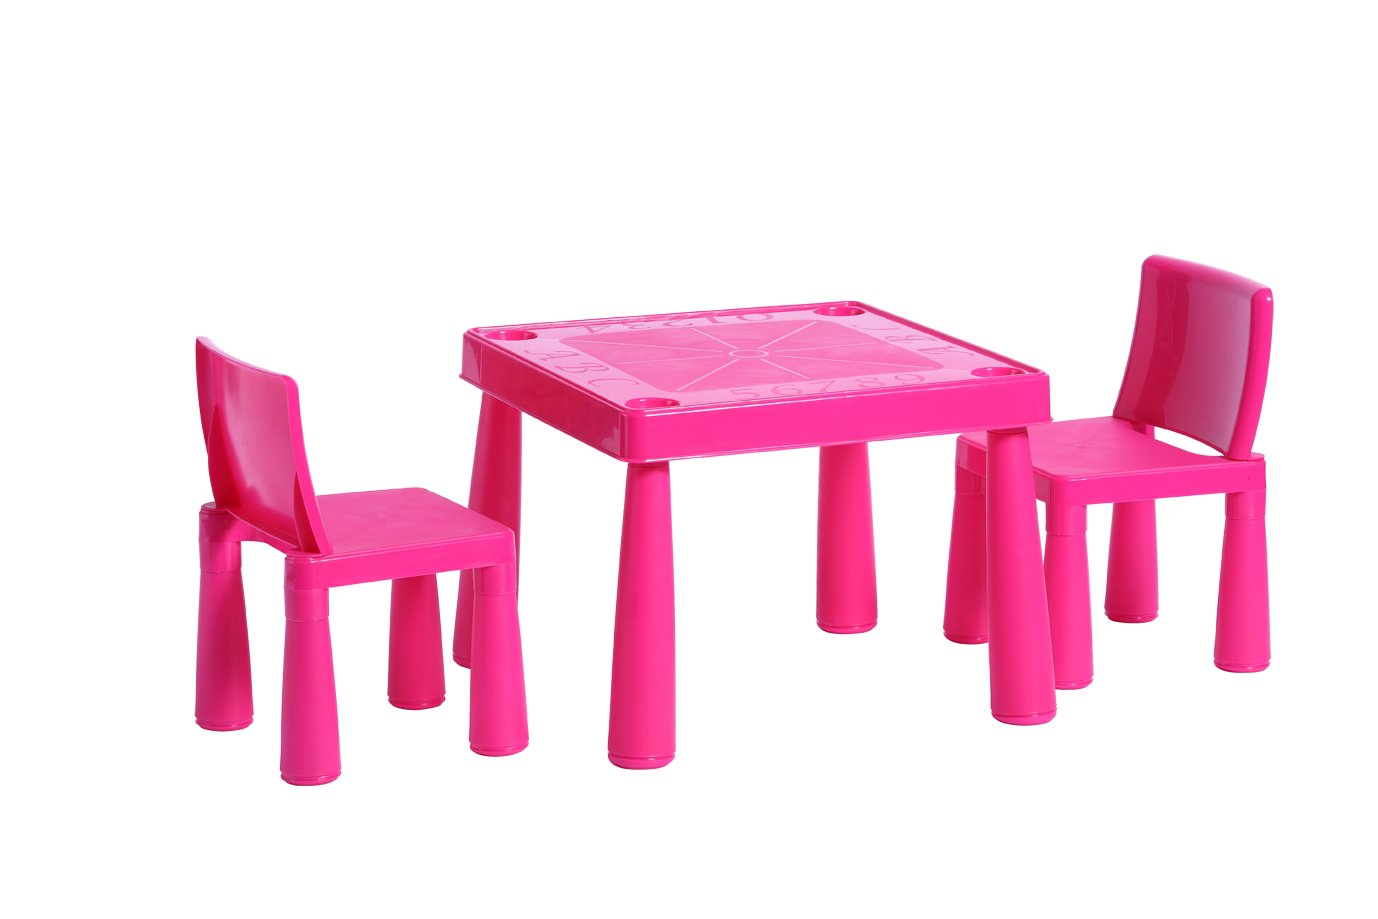 Childrens Kids Plastic Garden Outdoor Or Indoor Table And 2 Chairs Set For  Boys Or Girls (Pink): Amazon.co.uk: Kitchen U0026 Home